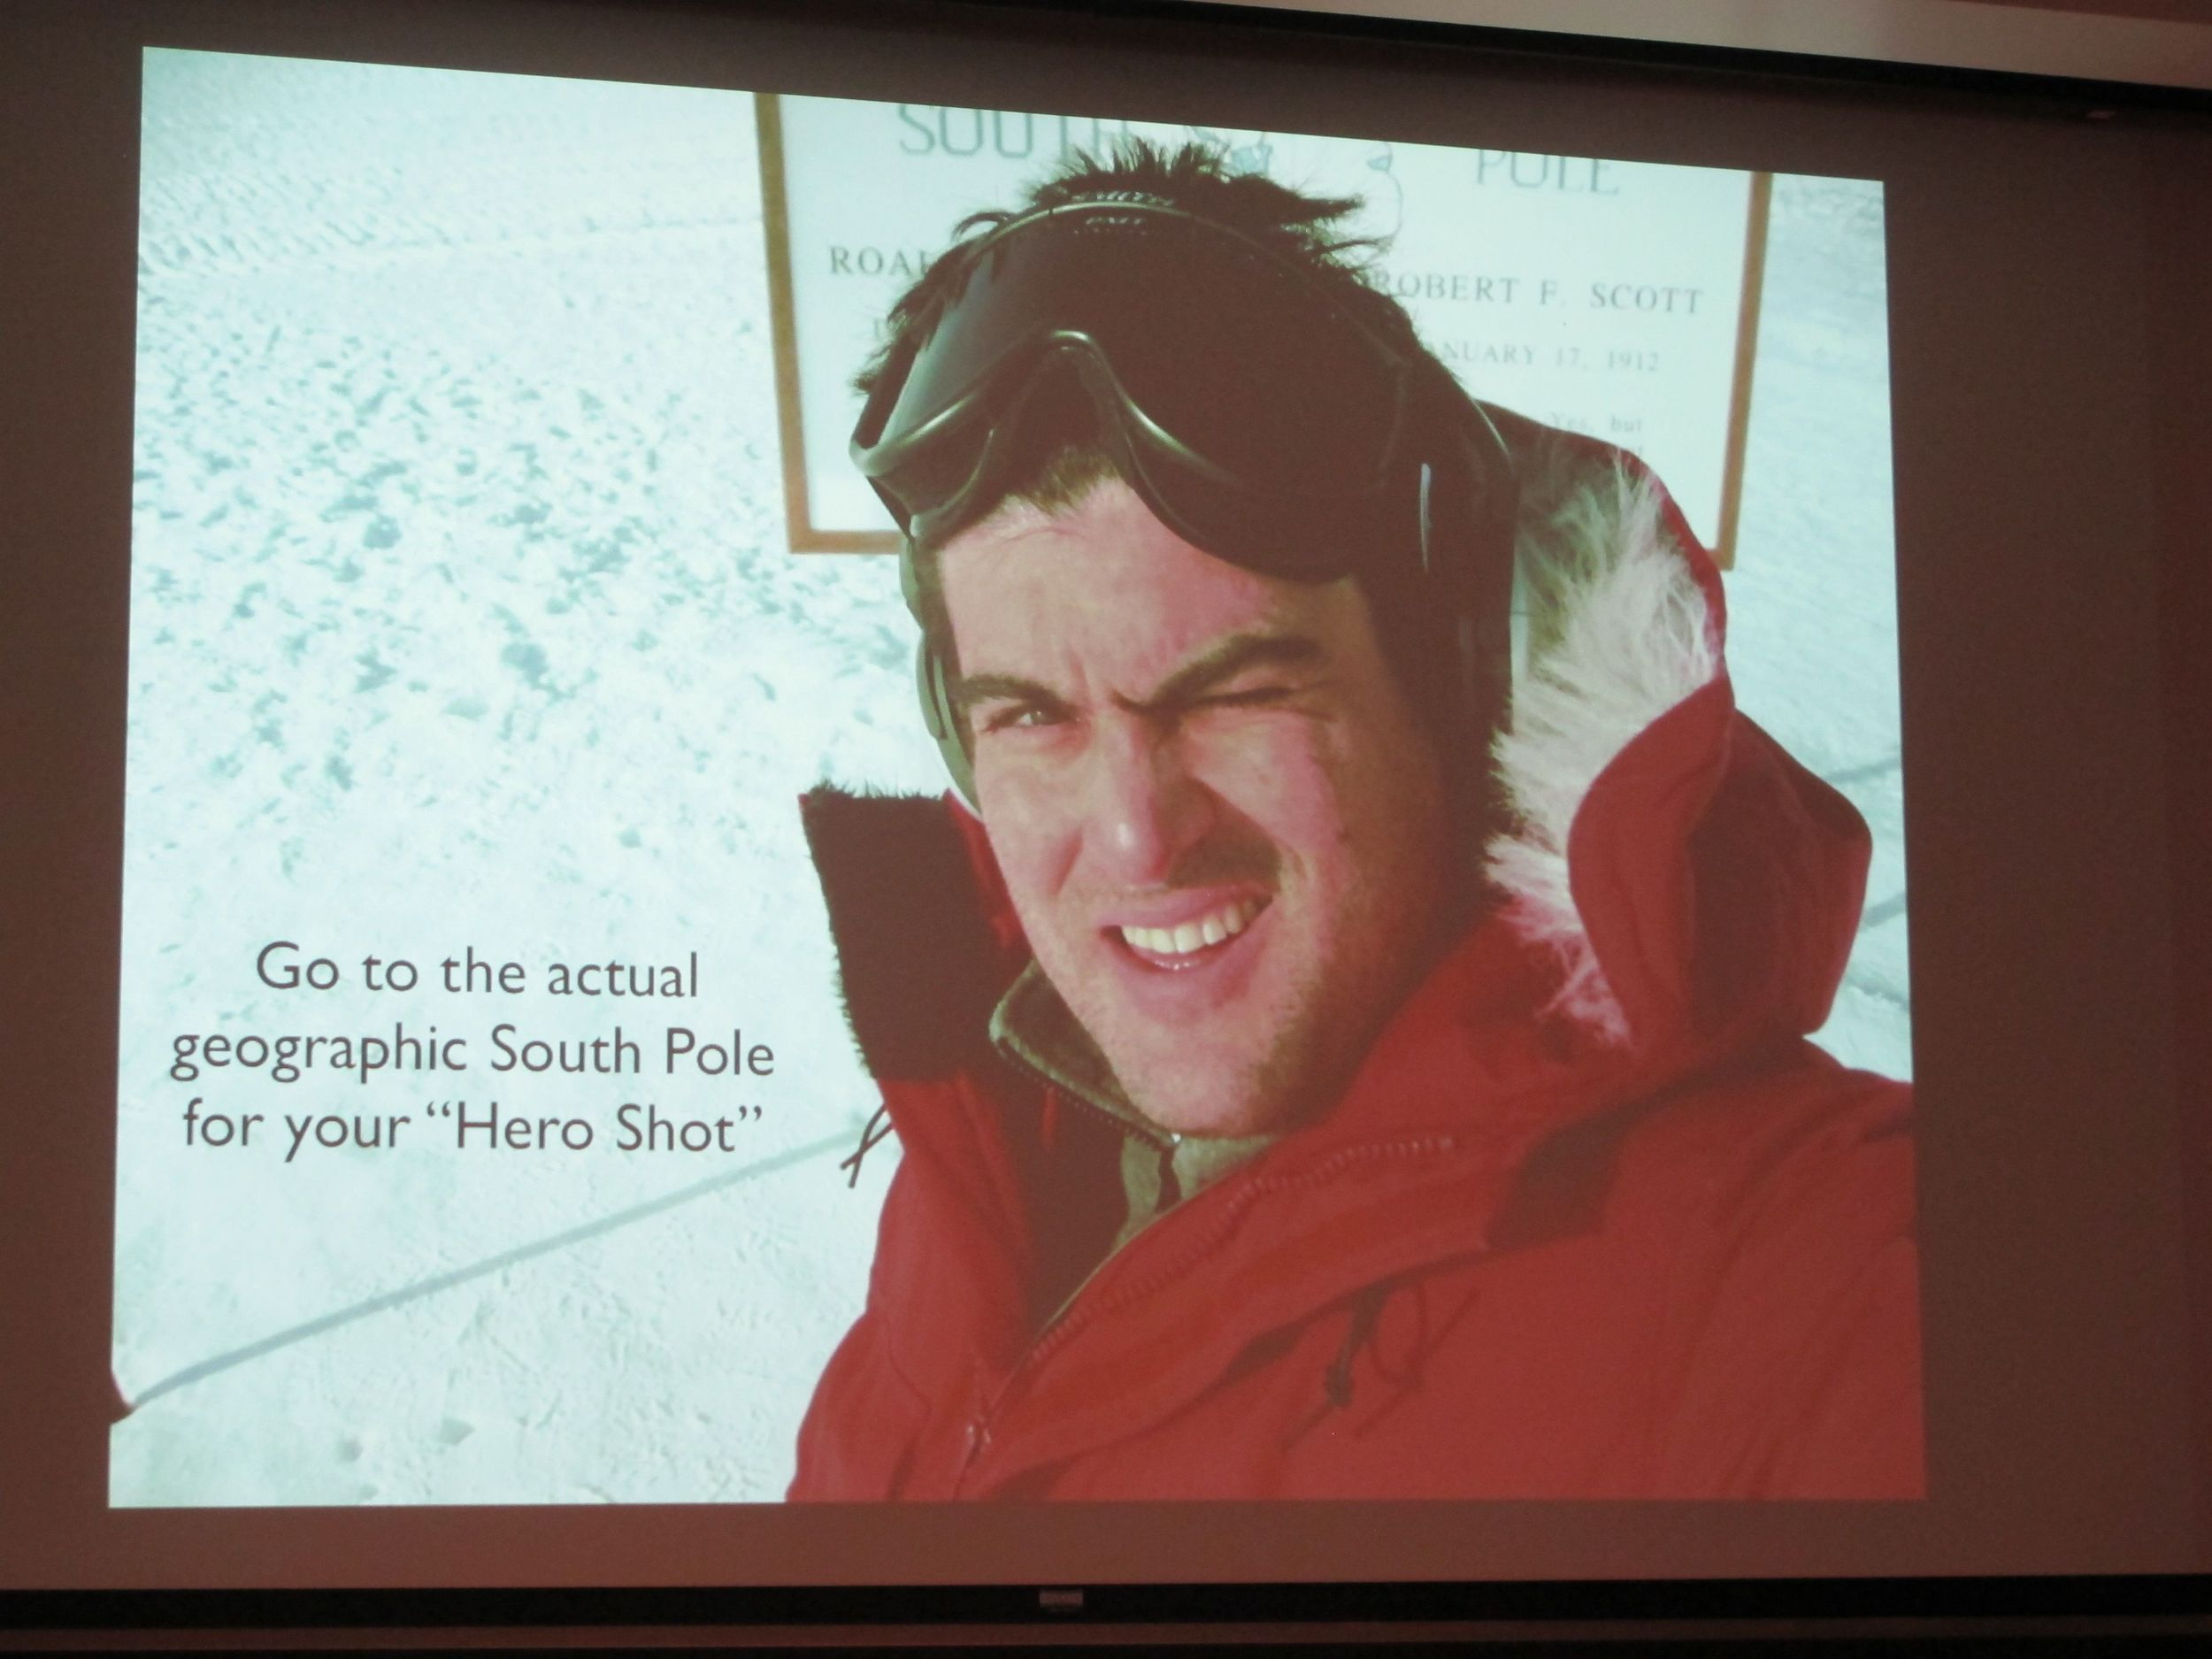 We took a detour to the South Pole with visiting lecturer (and Notebook contributor) Brian Keating, an astrophysicist at UC San Diego. He described going to an observatory station Antarctica to measure cosmic microwave background radiation emitted during and after the Big Bang 13.7 billion years ago—but just reaching the Earth now,